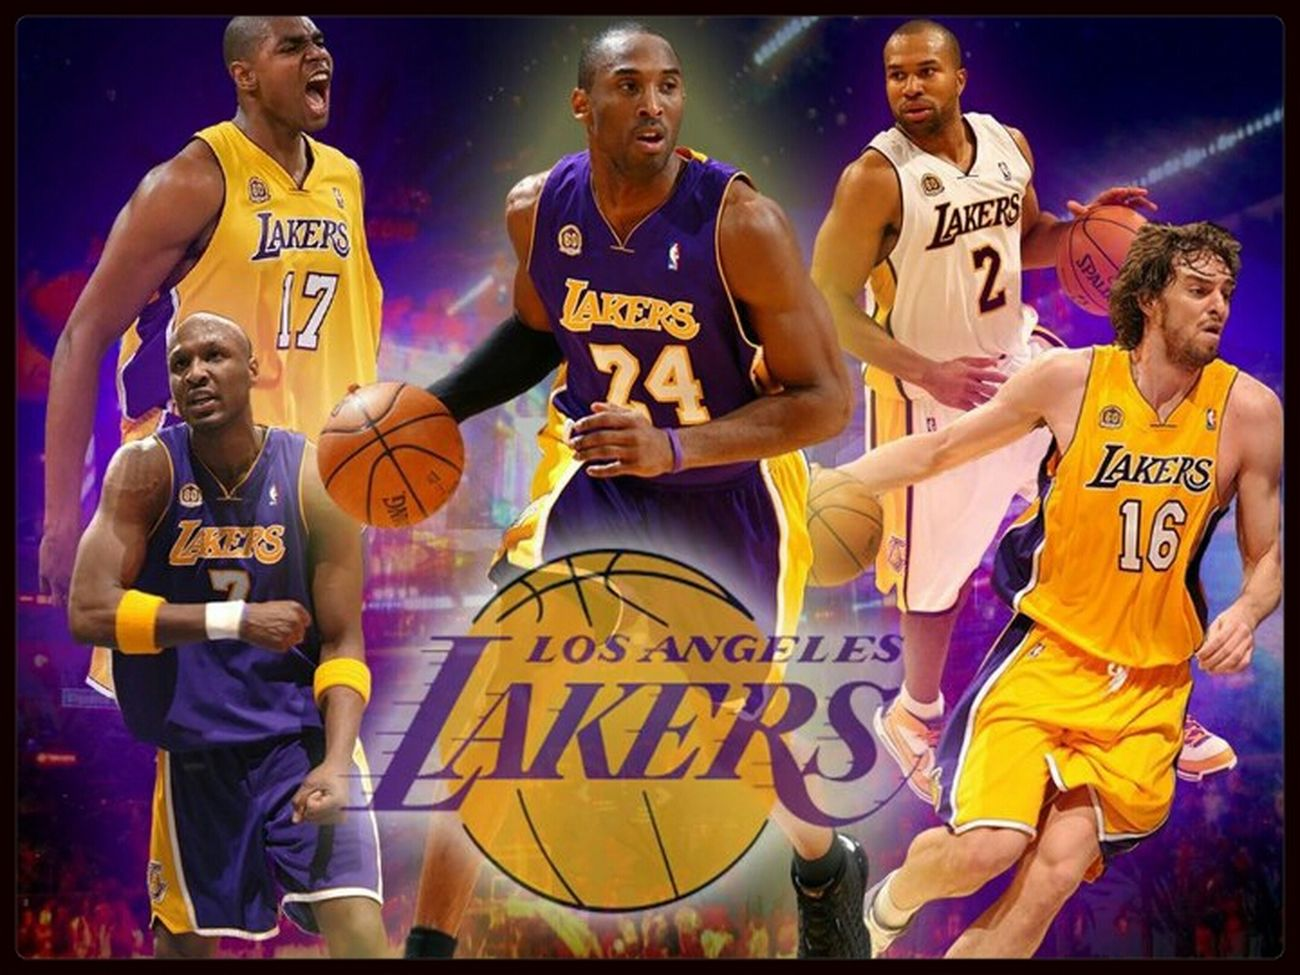 I Love My Team#lakernation#1